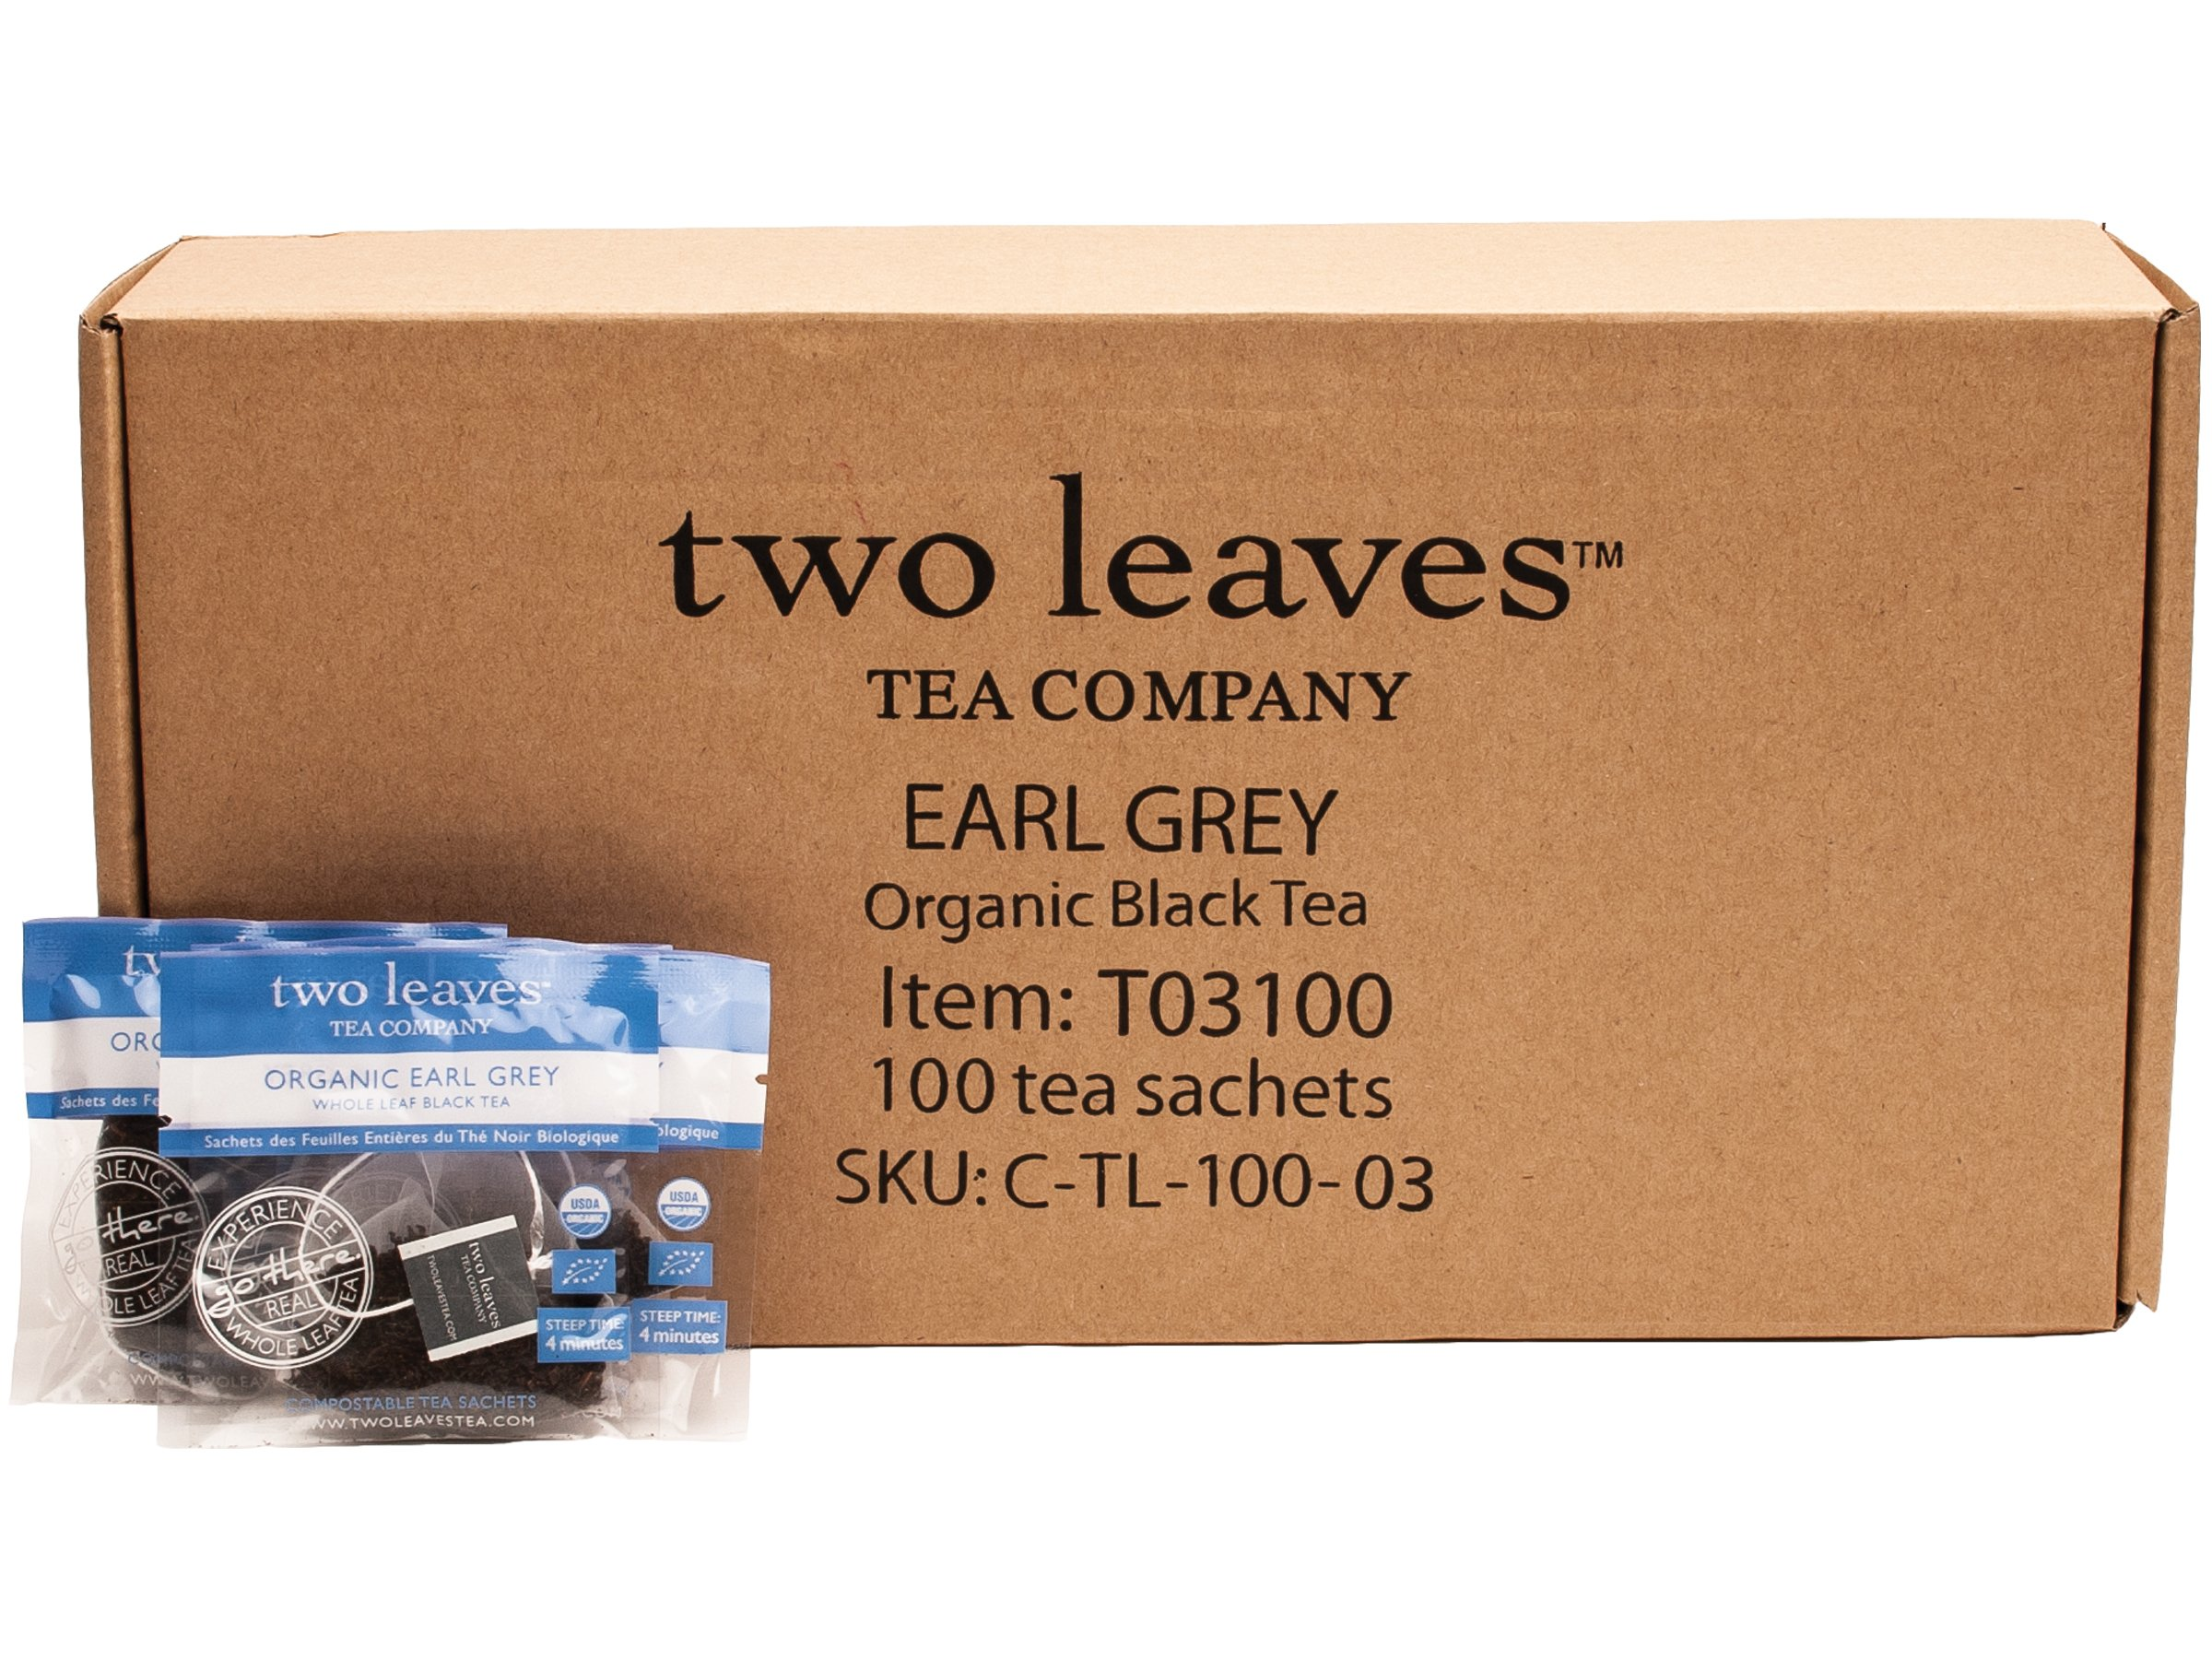 Two Leaves and a Bud Organic Earl Grey Black Tea Bags, 100 Count, Organic Whole Leaf Full Caffeine Black Tea in Pyramid Sachet Bags, Delicious Hot or Iced with Milk, Sugar, Honey or Plain by Two Leaves and a Bud